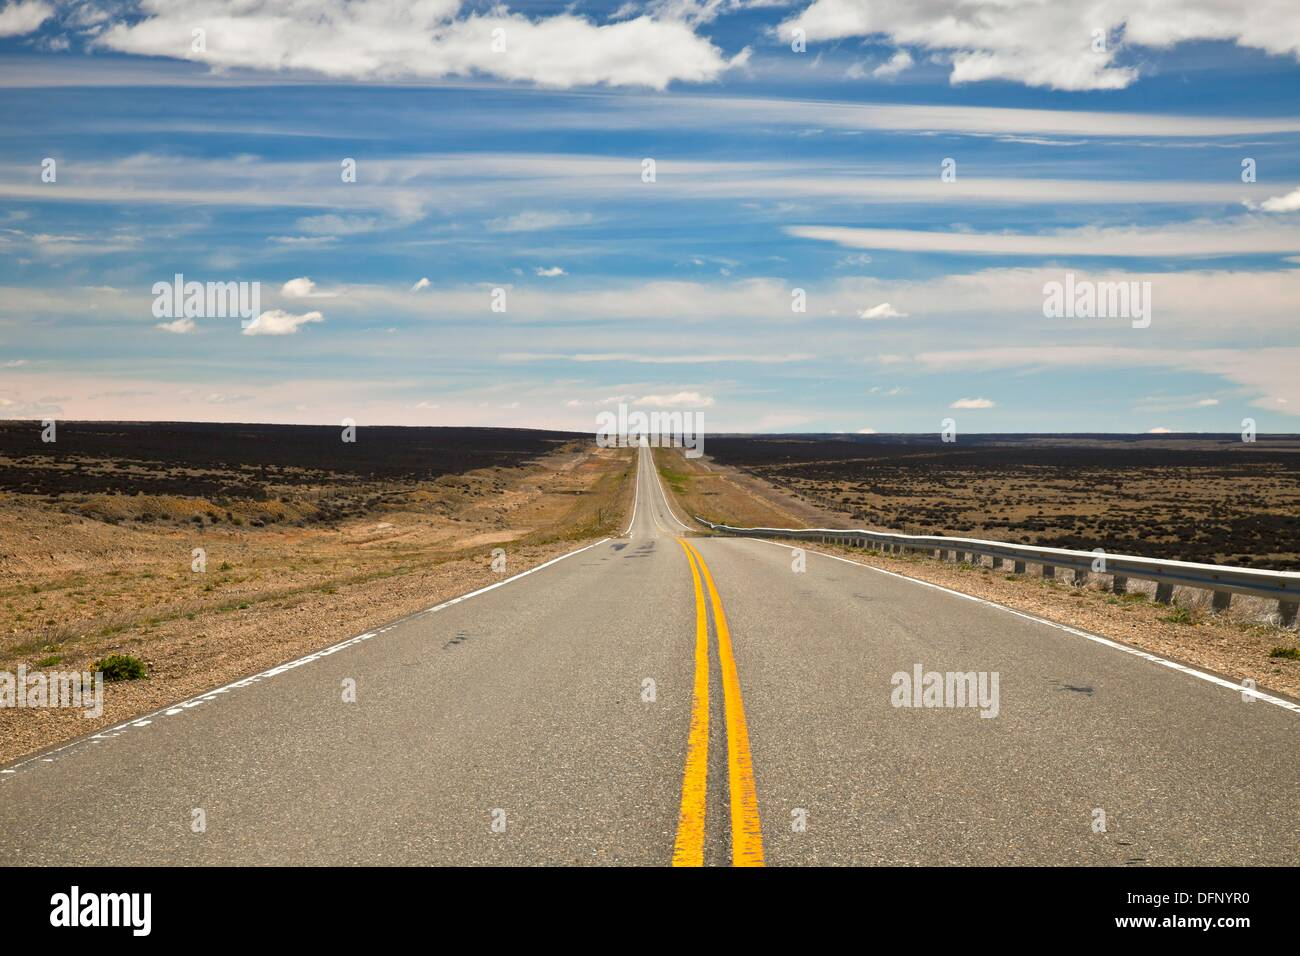 Argentine pampa, flat plain of dry grass and low thorny scrub, region famous for gale force winds, long straight roads, - Stock Image